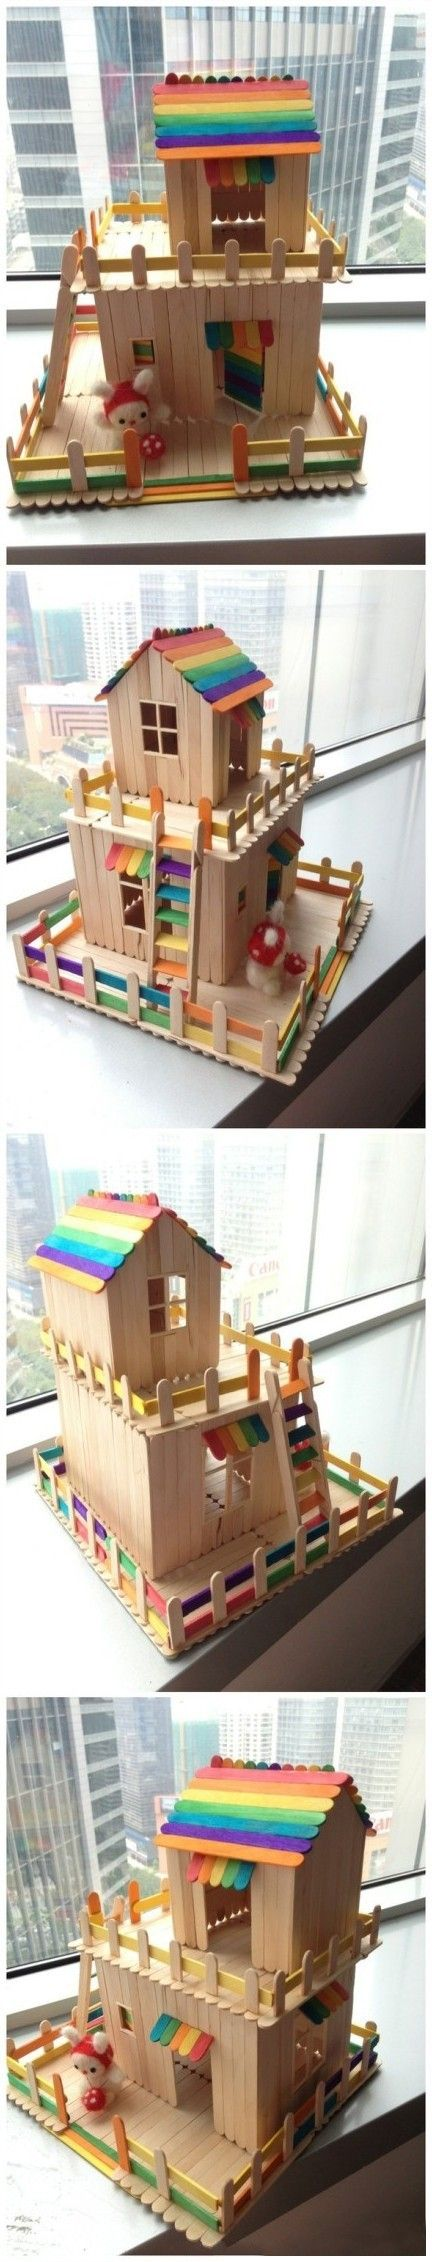 Popsicle Stick House Instructions In Japanese Homemade